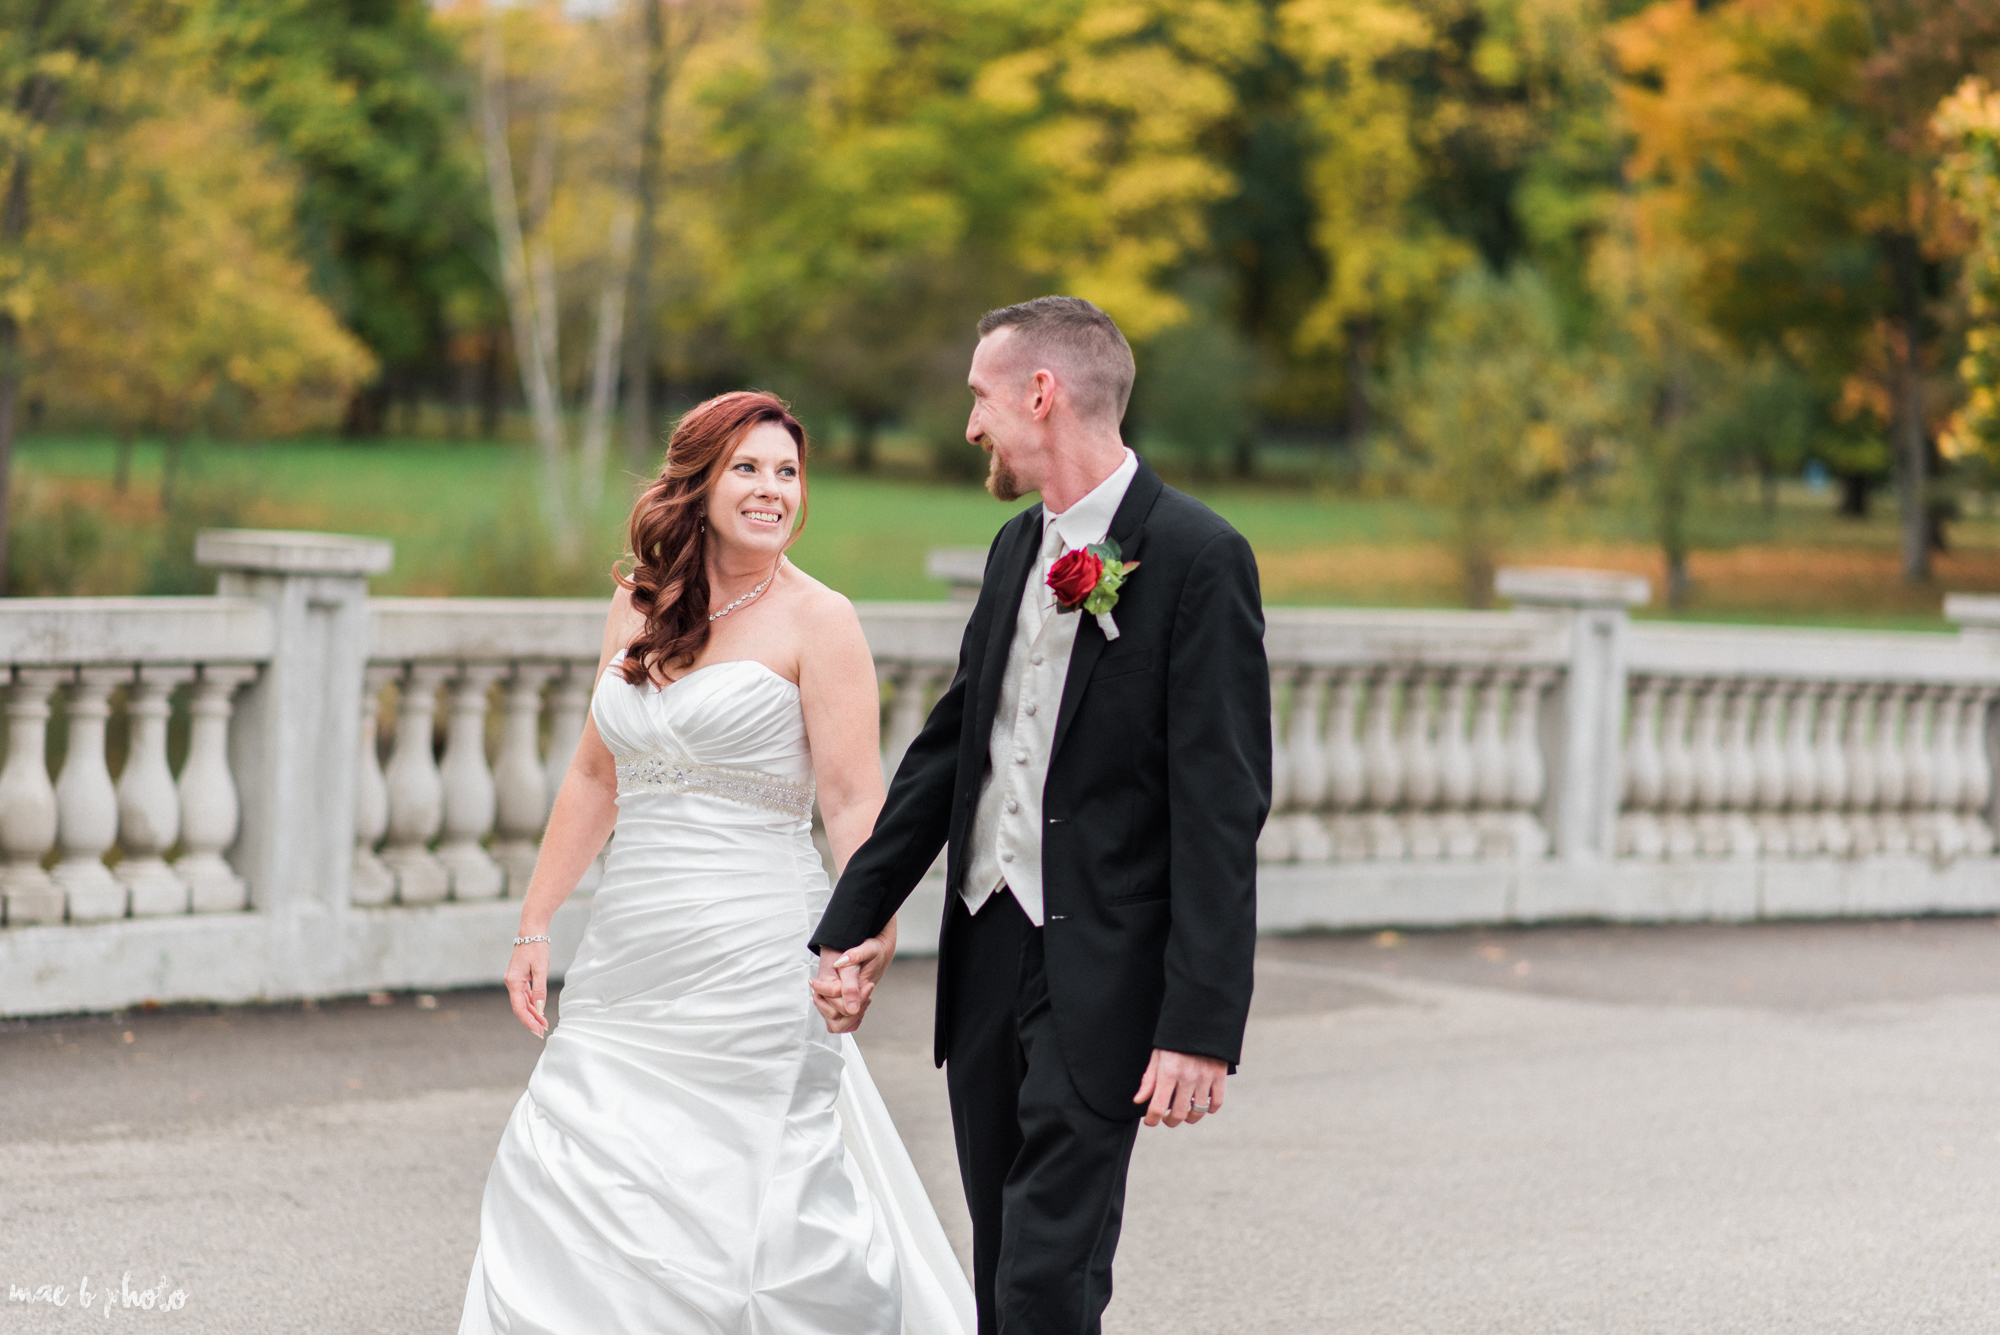 tracey and aaron's personal fall wedding at tiffany's banquet center in brookfield ohio-83.jpg